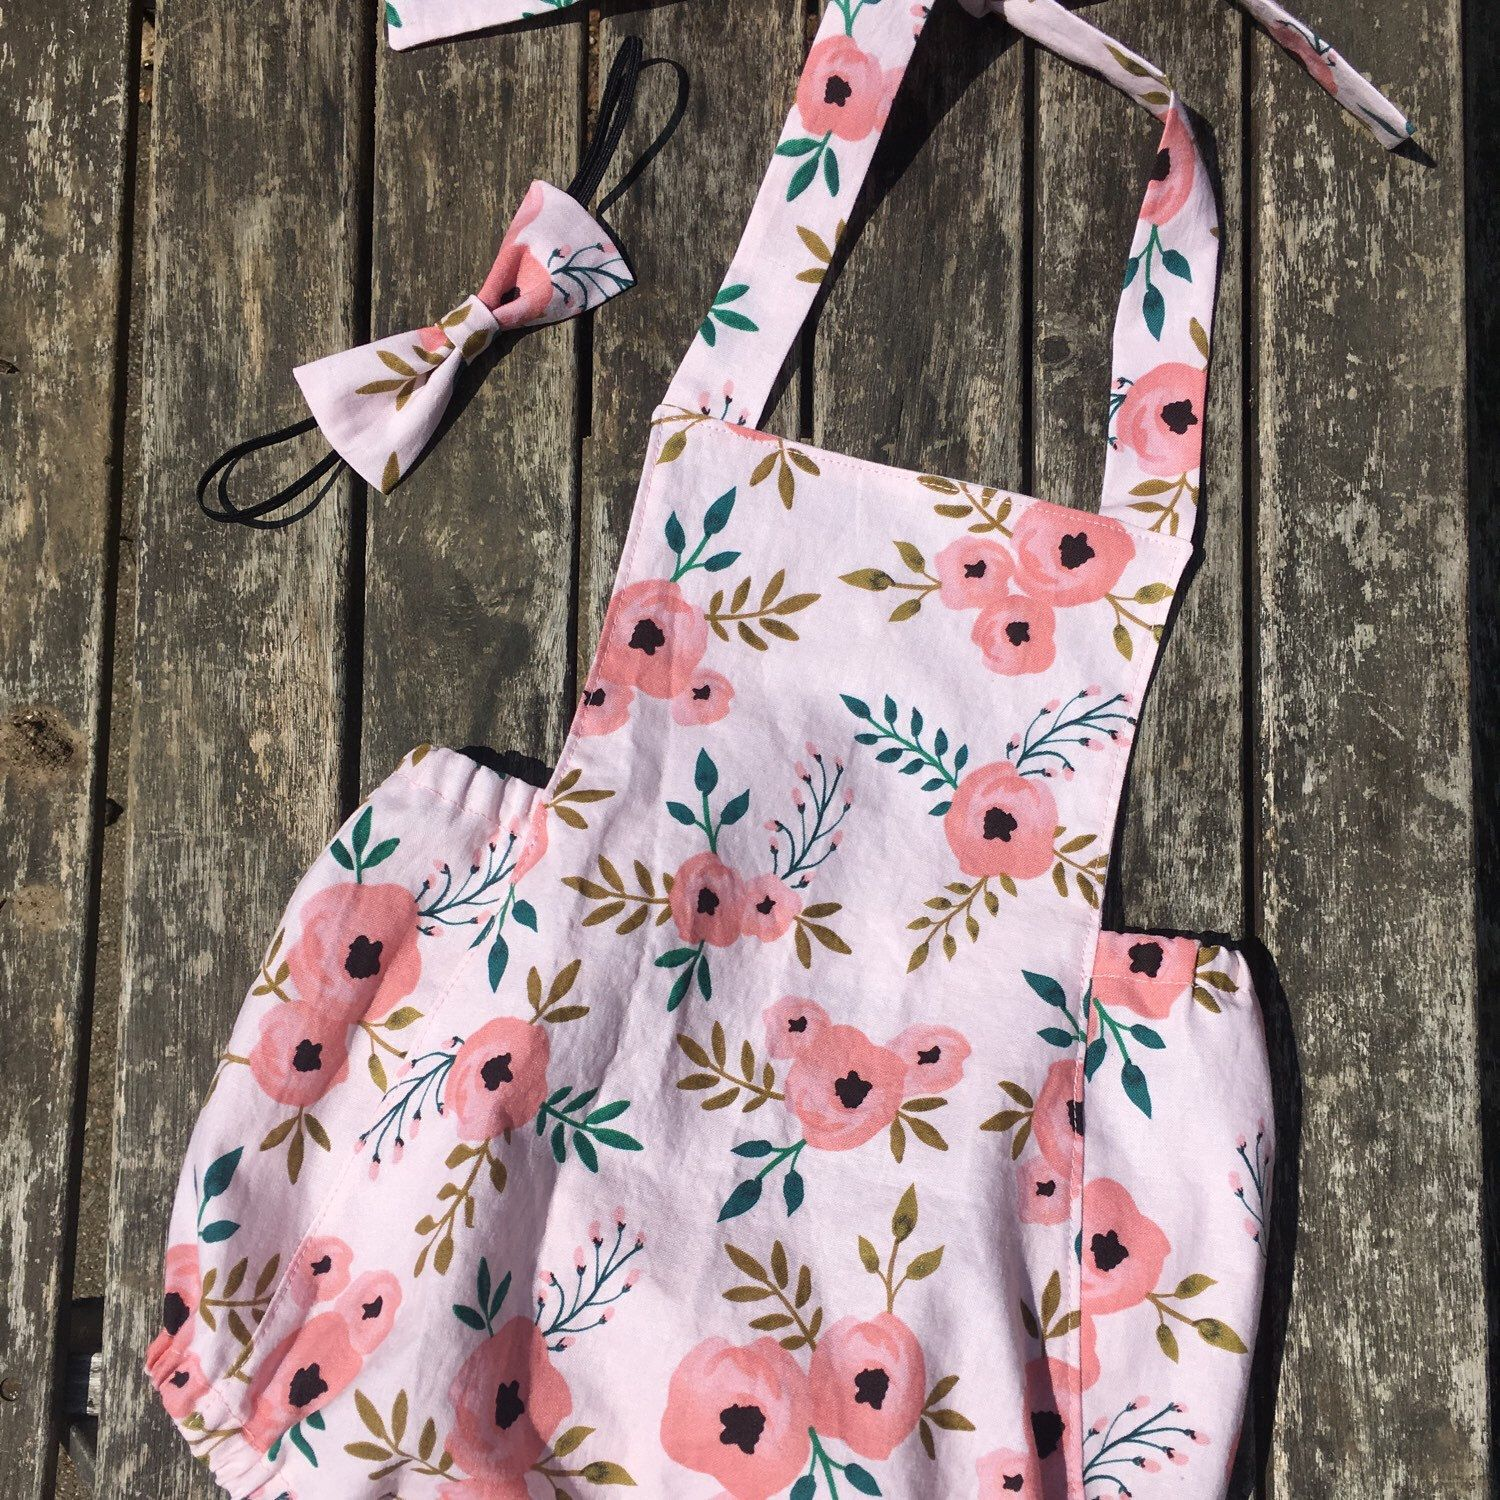 e2710cac5597a Beautiful new floral baby romper available now! Perfect for a spring or  summer wedding or romp in the garden 🌸